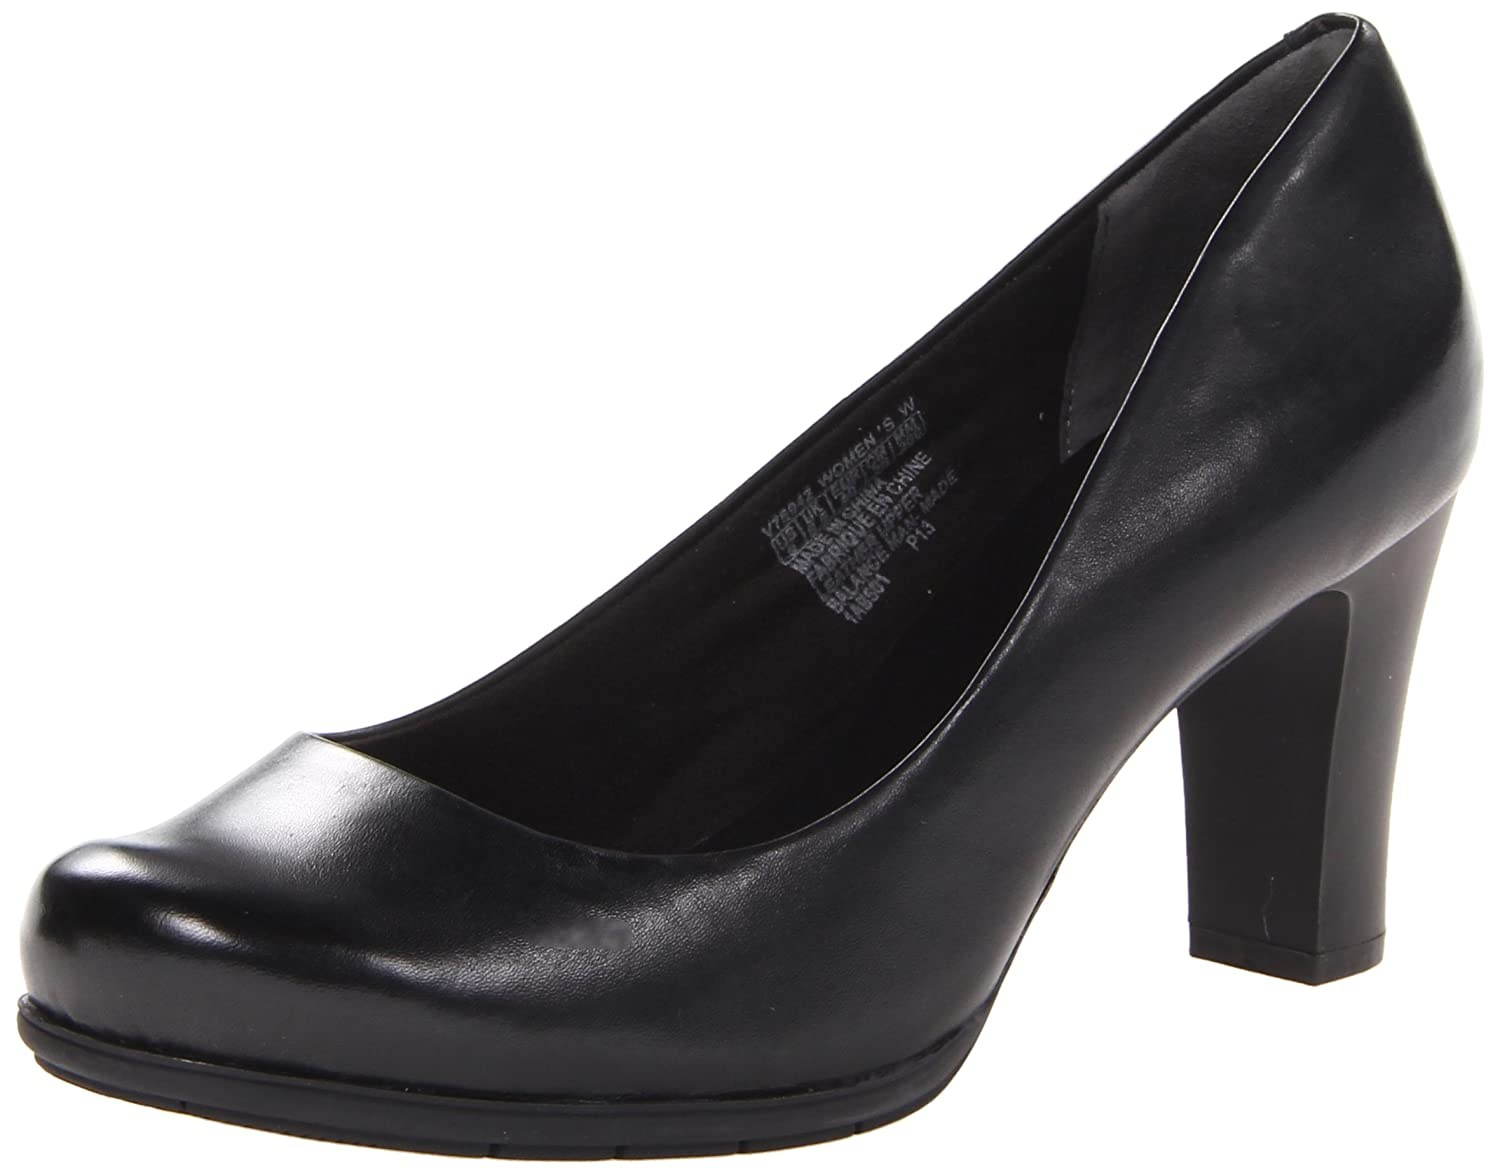 Black Leather Rockport Women's Total Motion Pump